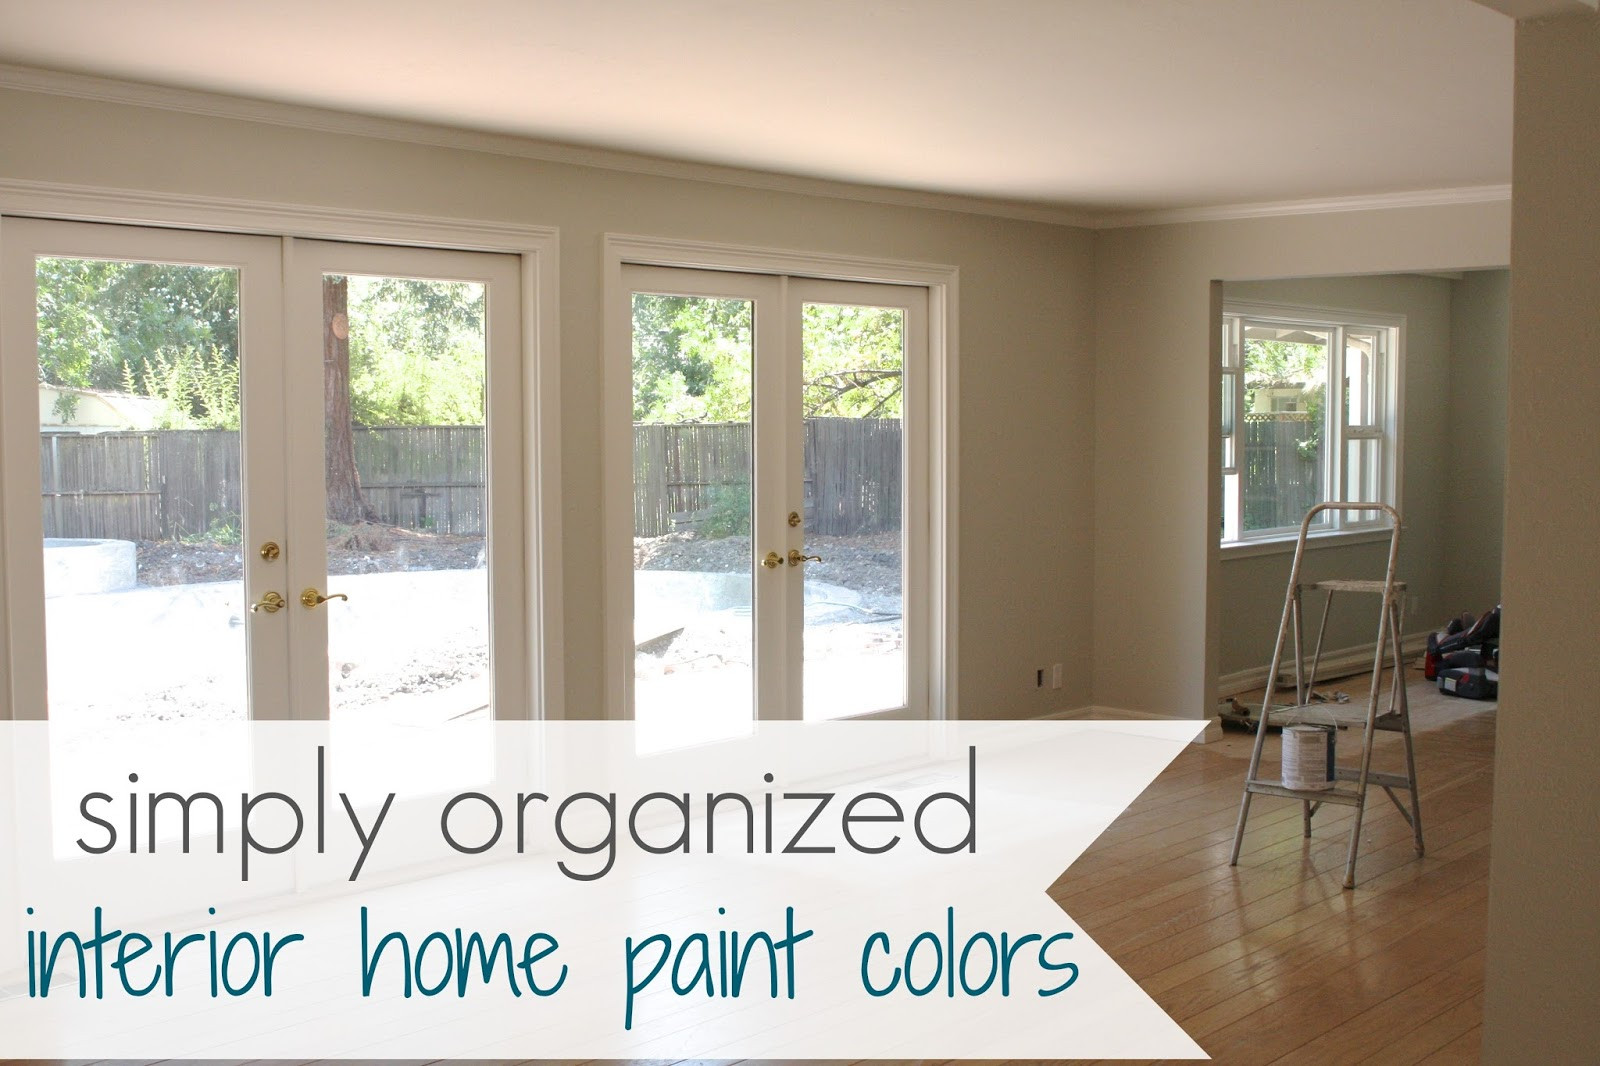 Best ideas about Interior Paint Colors . Save or Pin my home interior paint color palate simply organized Now.